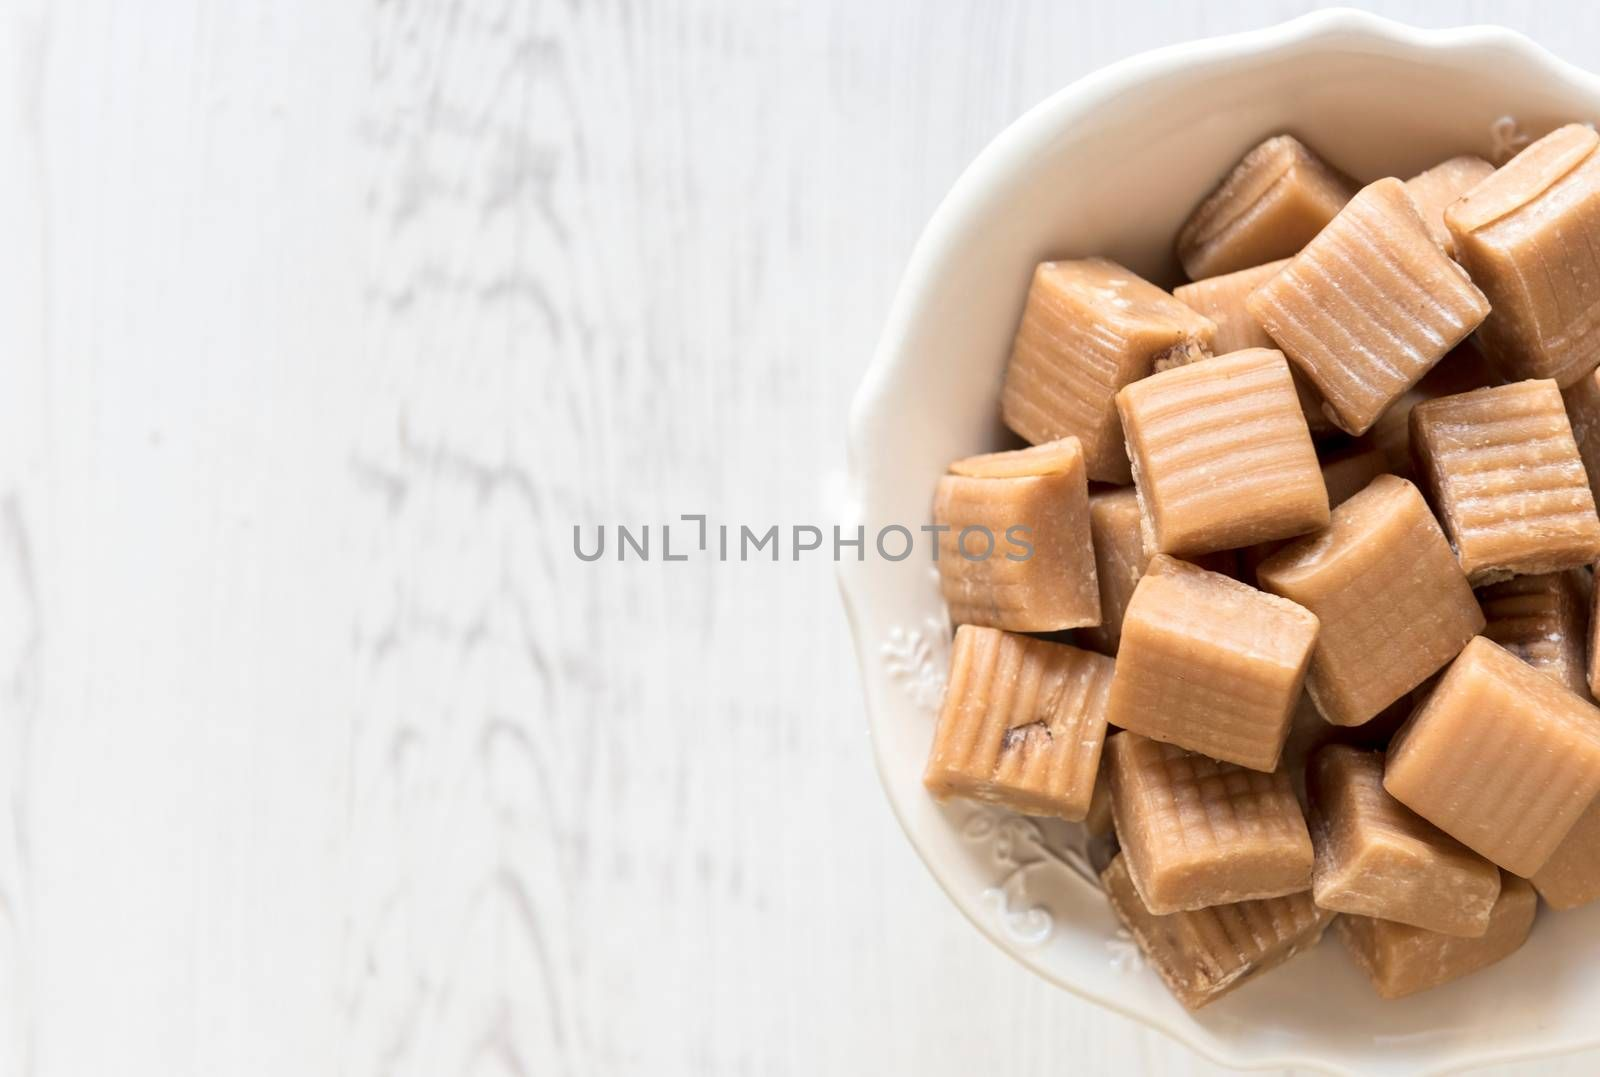 Milk and caramel homemade bonbons and blank space